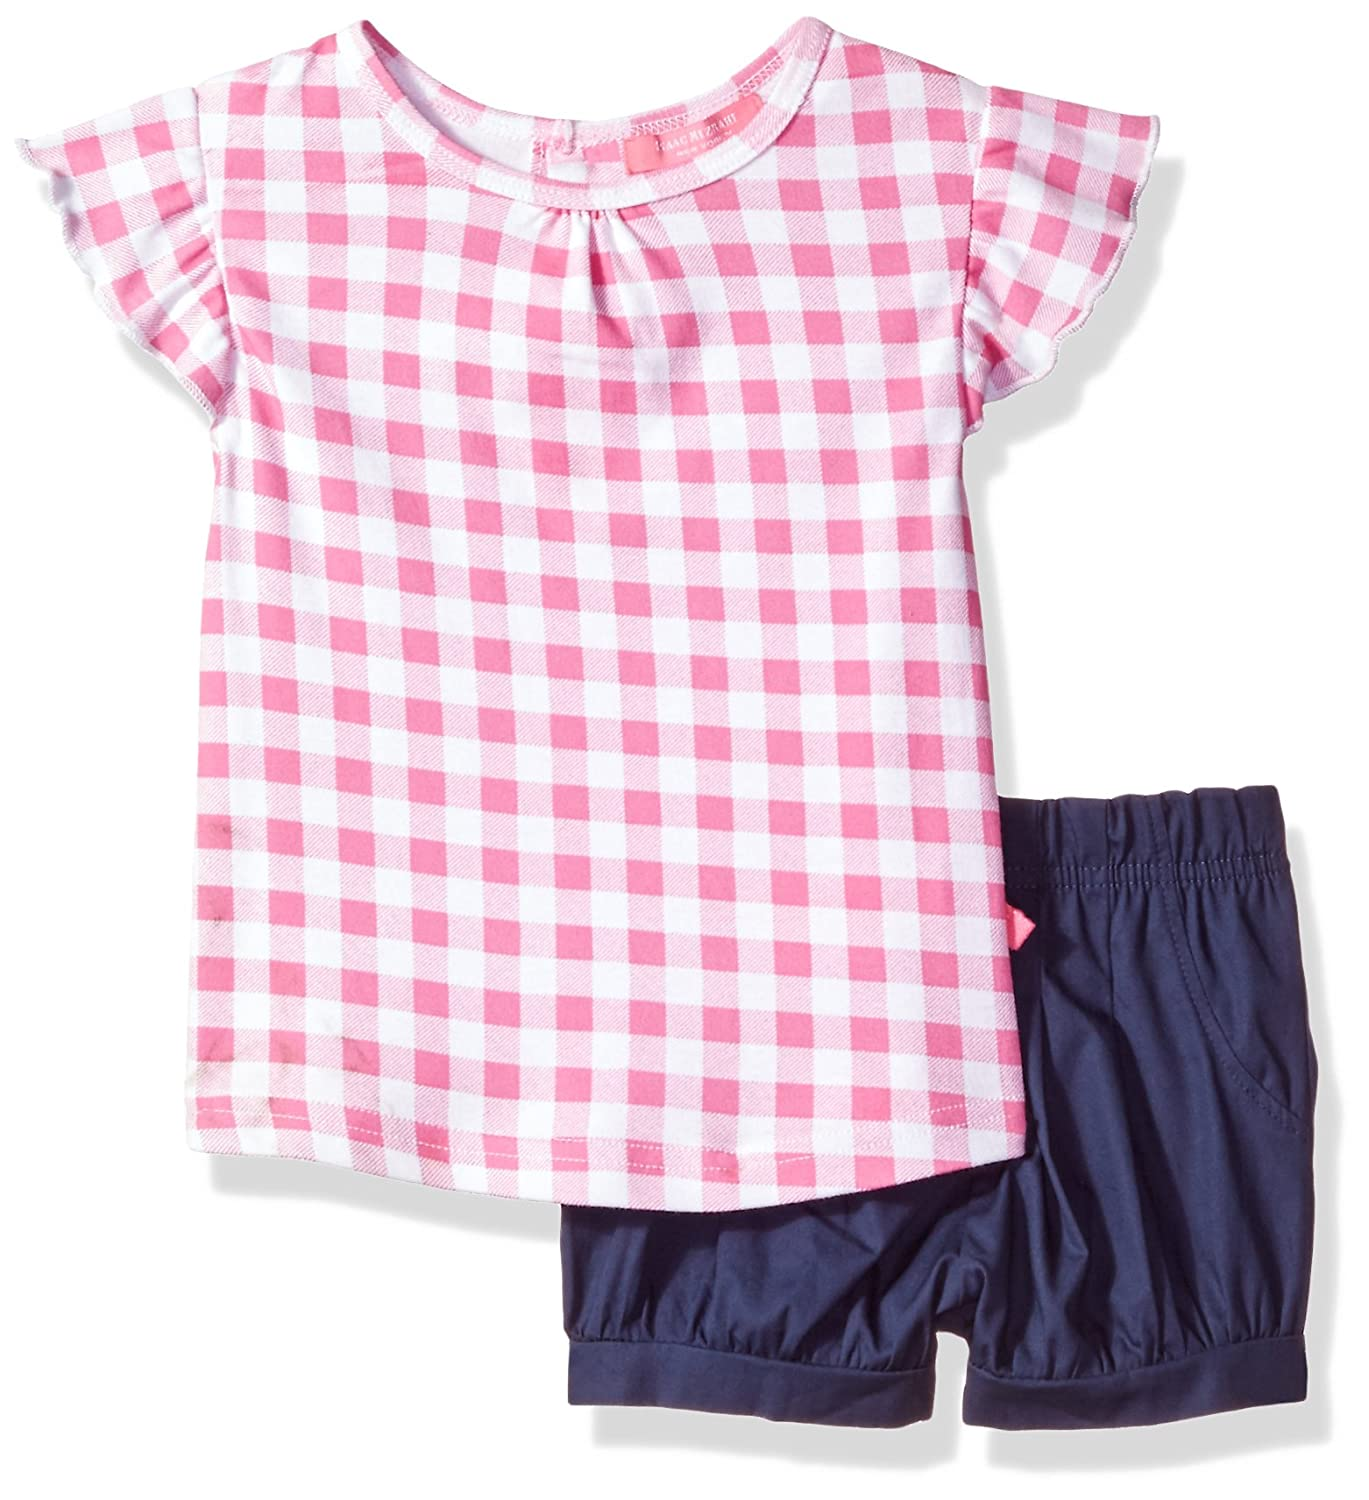 Isaac Mizrahi Baby Girls' 2 Piece Popover Shirt Set with Shorts Isaac Mizrahi Children' s Apparel IM_2PC_143_RS_S_G_INF